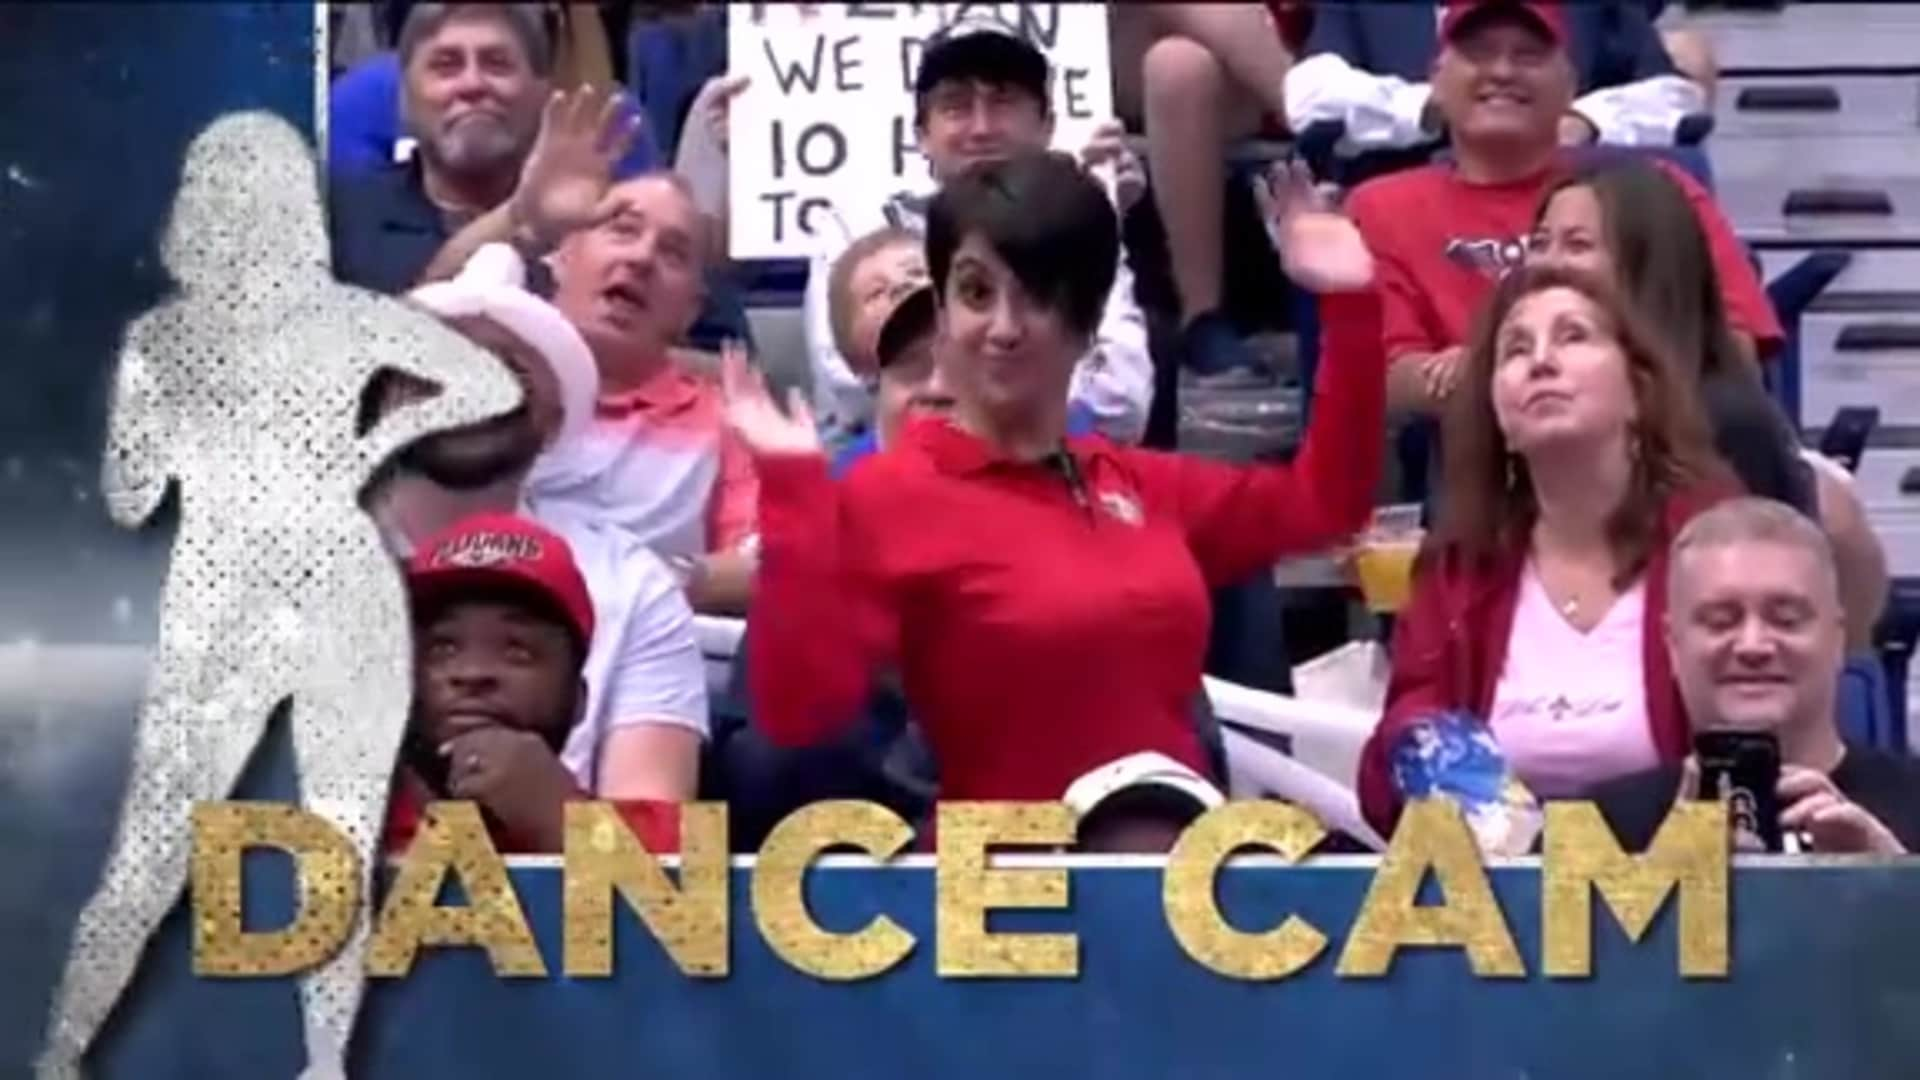 Entertainment: Pelicans Dance Cam - October 25, 2019 vs. Mavericks